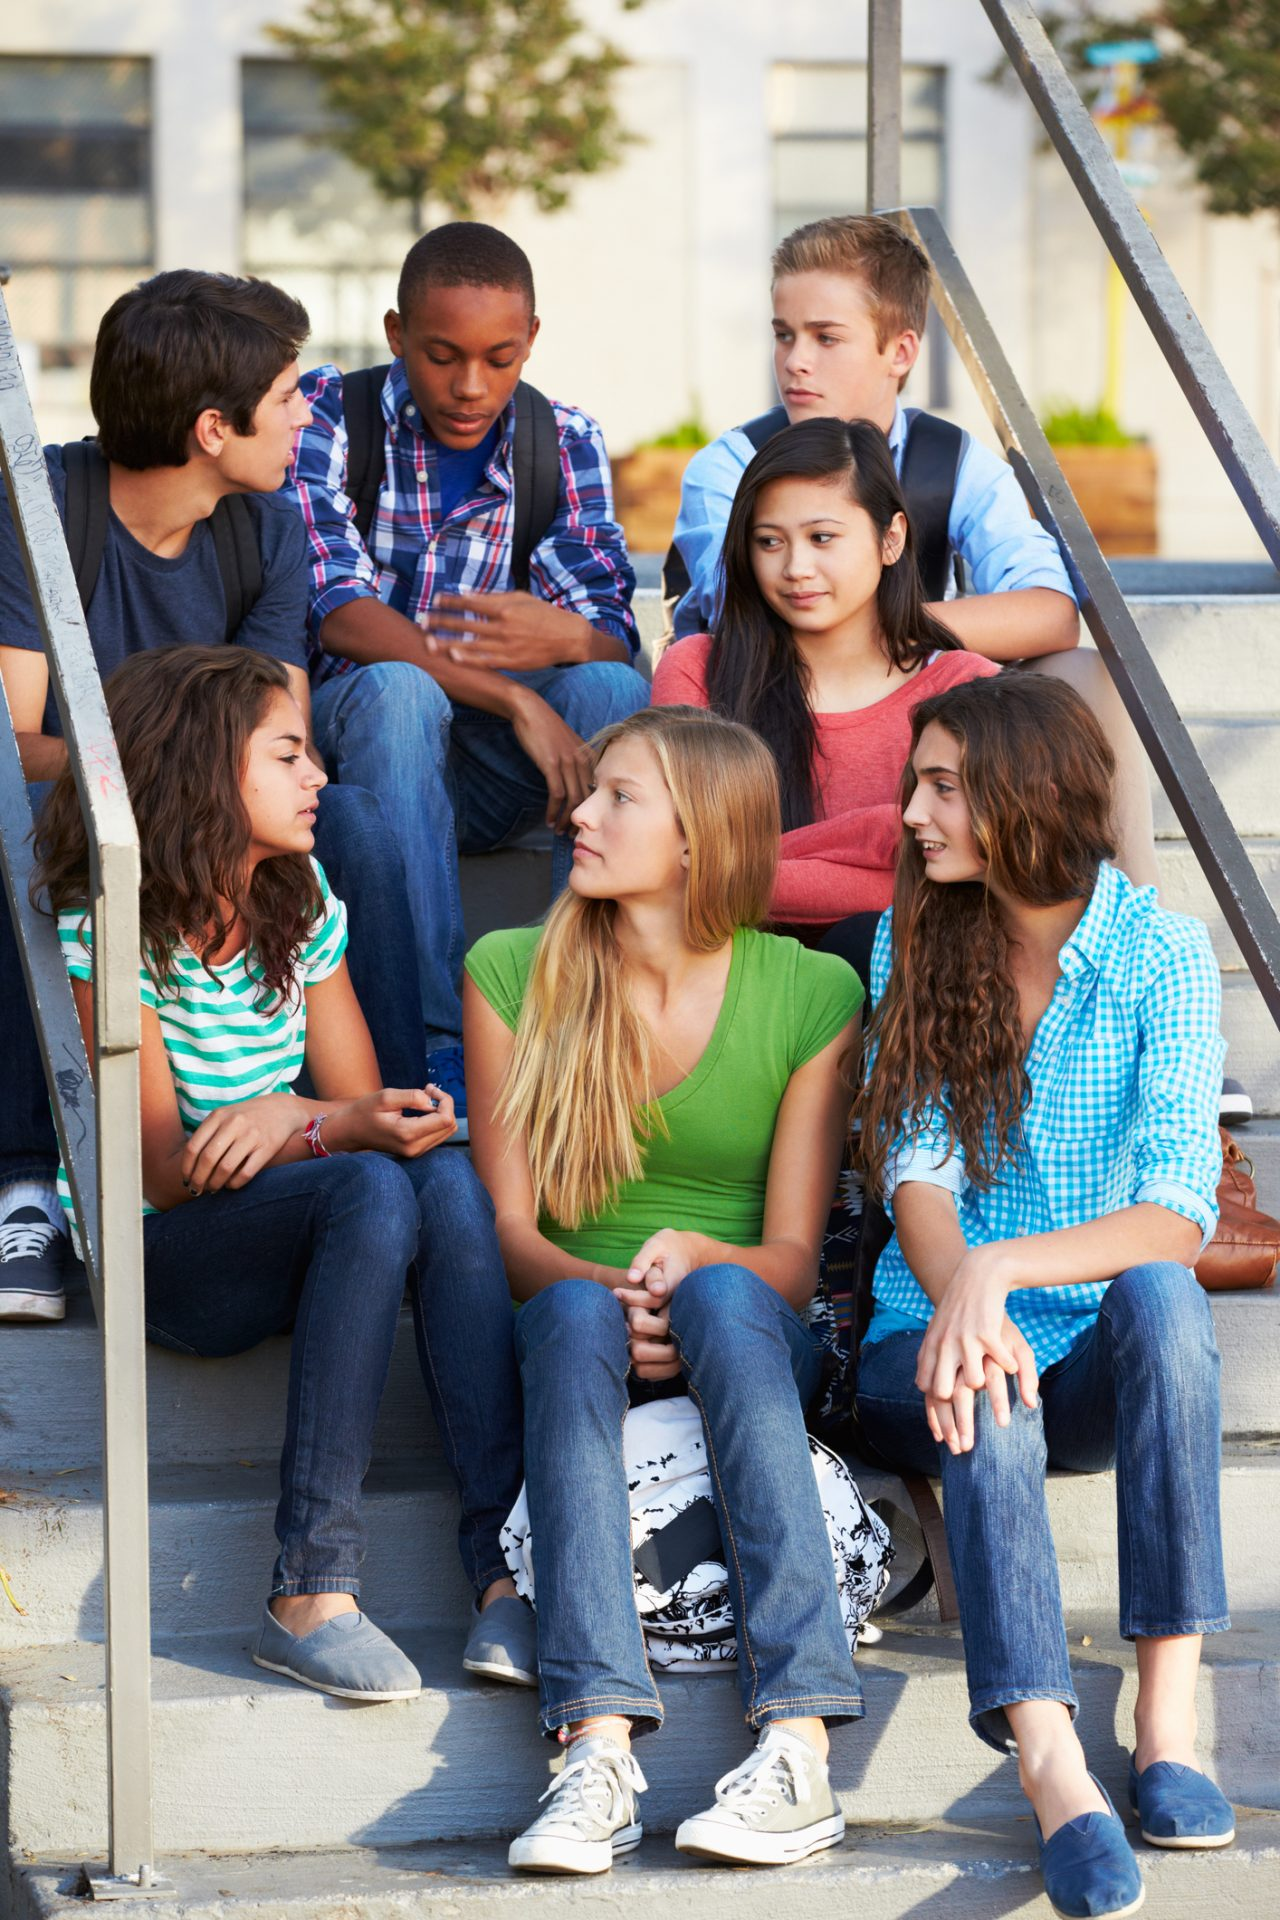 Group of diverse teens on steps